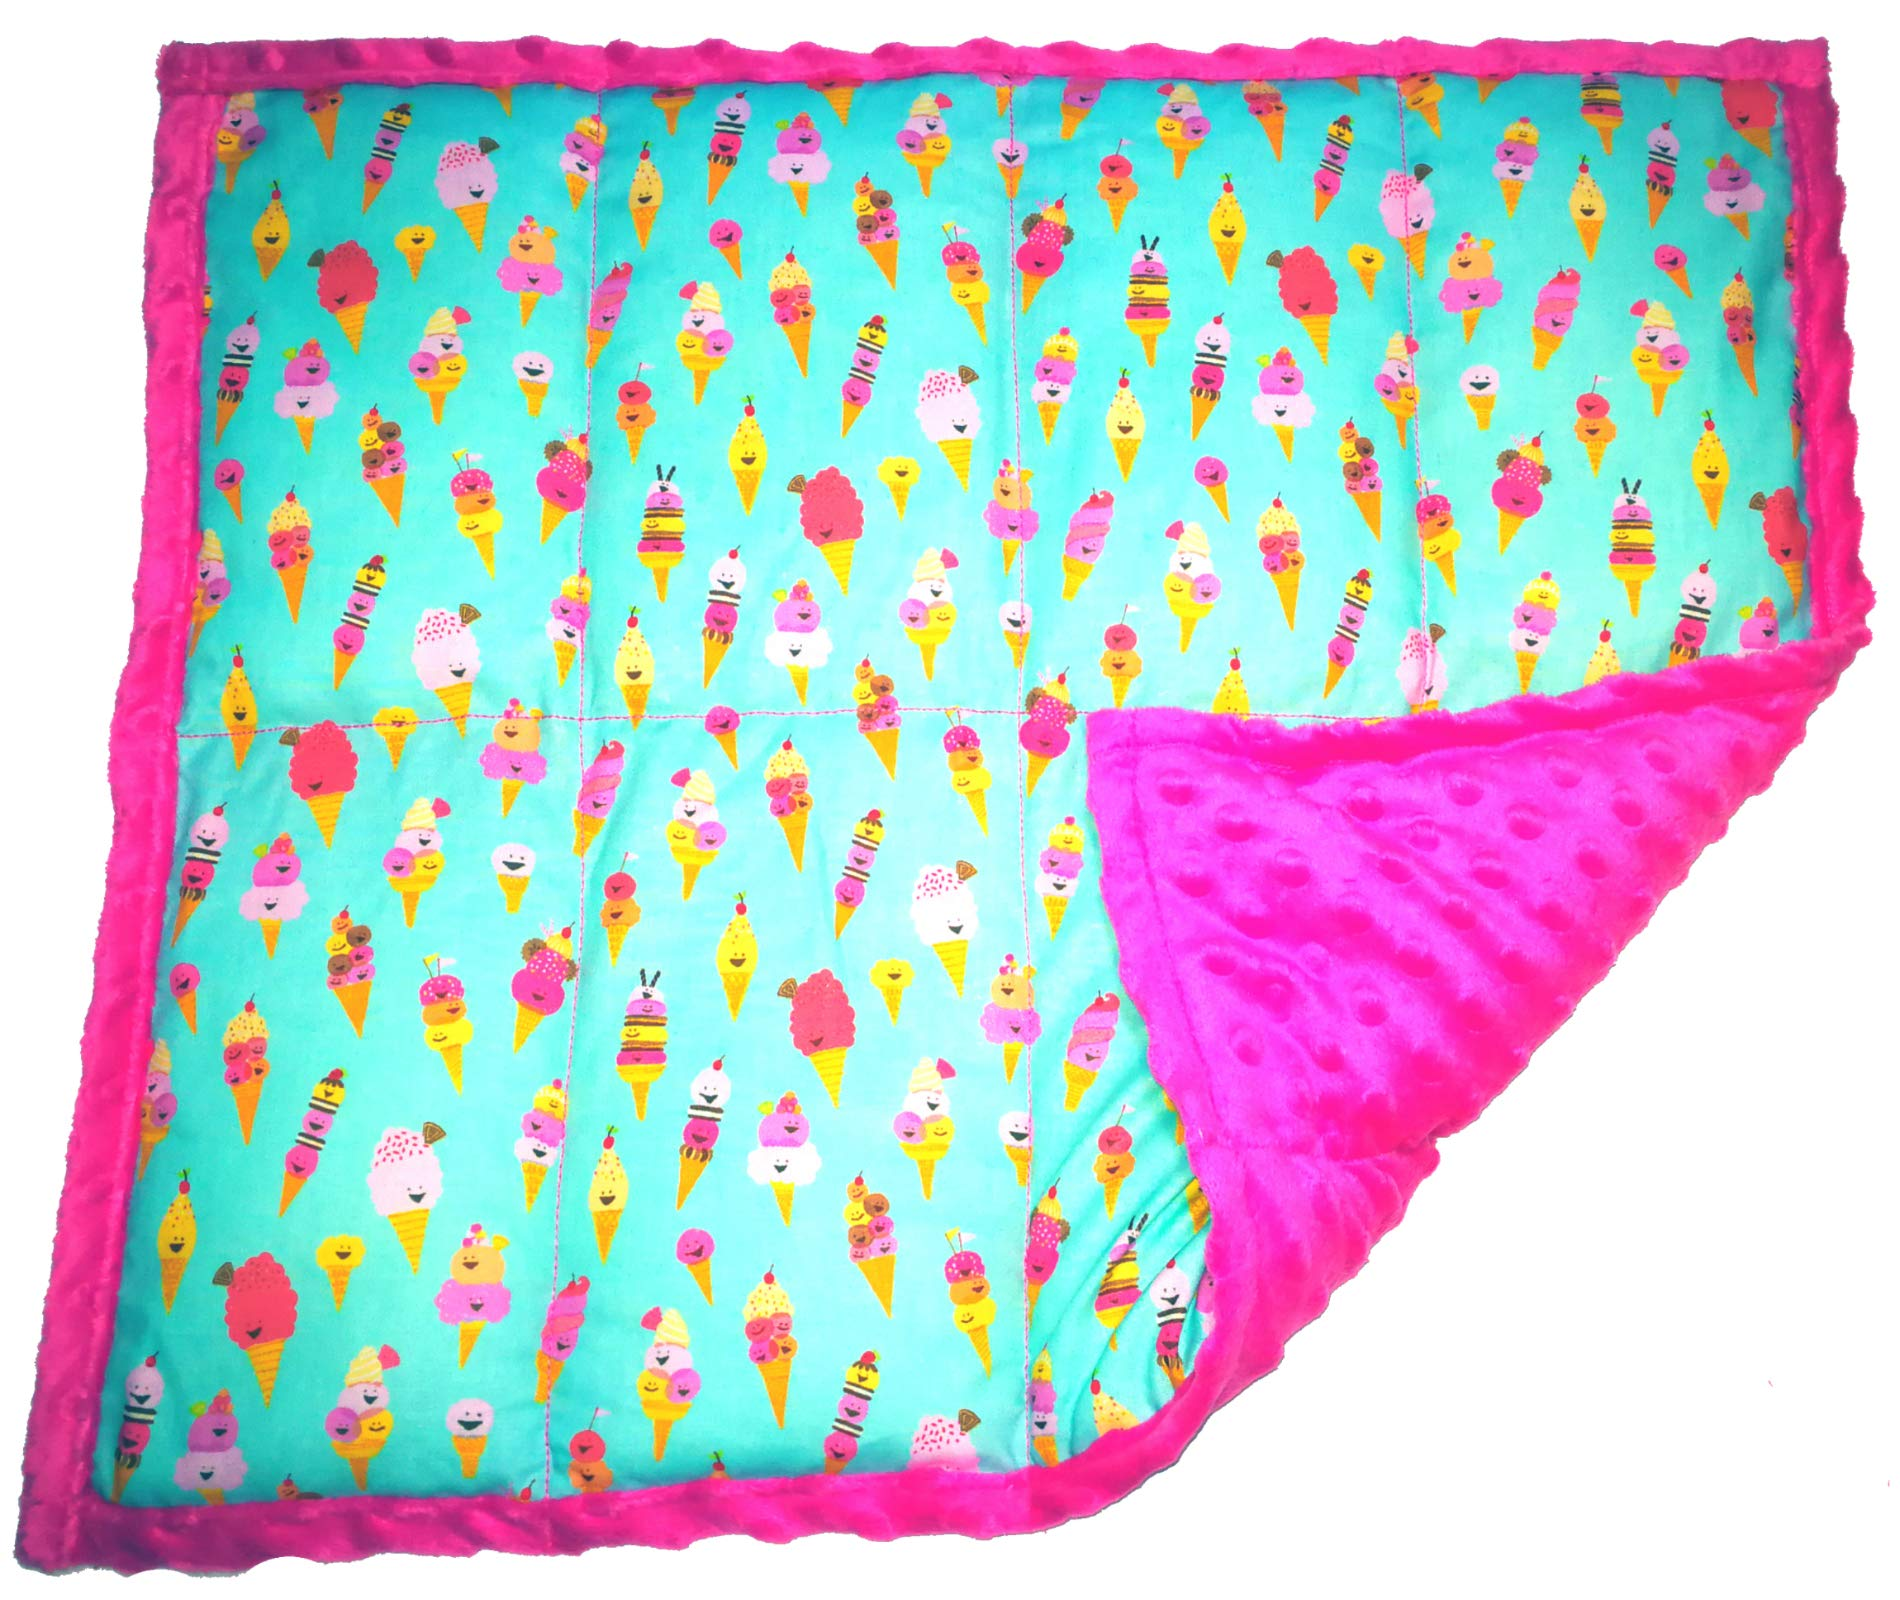 Weighted Lap Pad for Kids by ReachTherapy Solutions - Portable Sensory Support - Choose from Multiple Prints Sizes & Weights (3 lbs & W 21'' x H 18'', Ice Cream!)